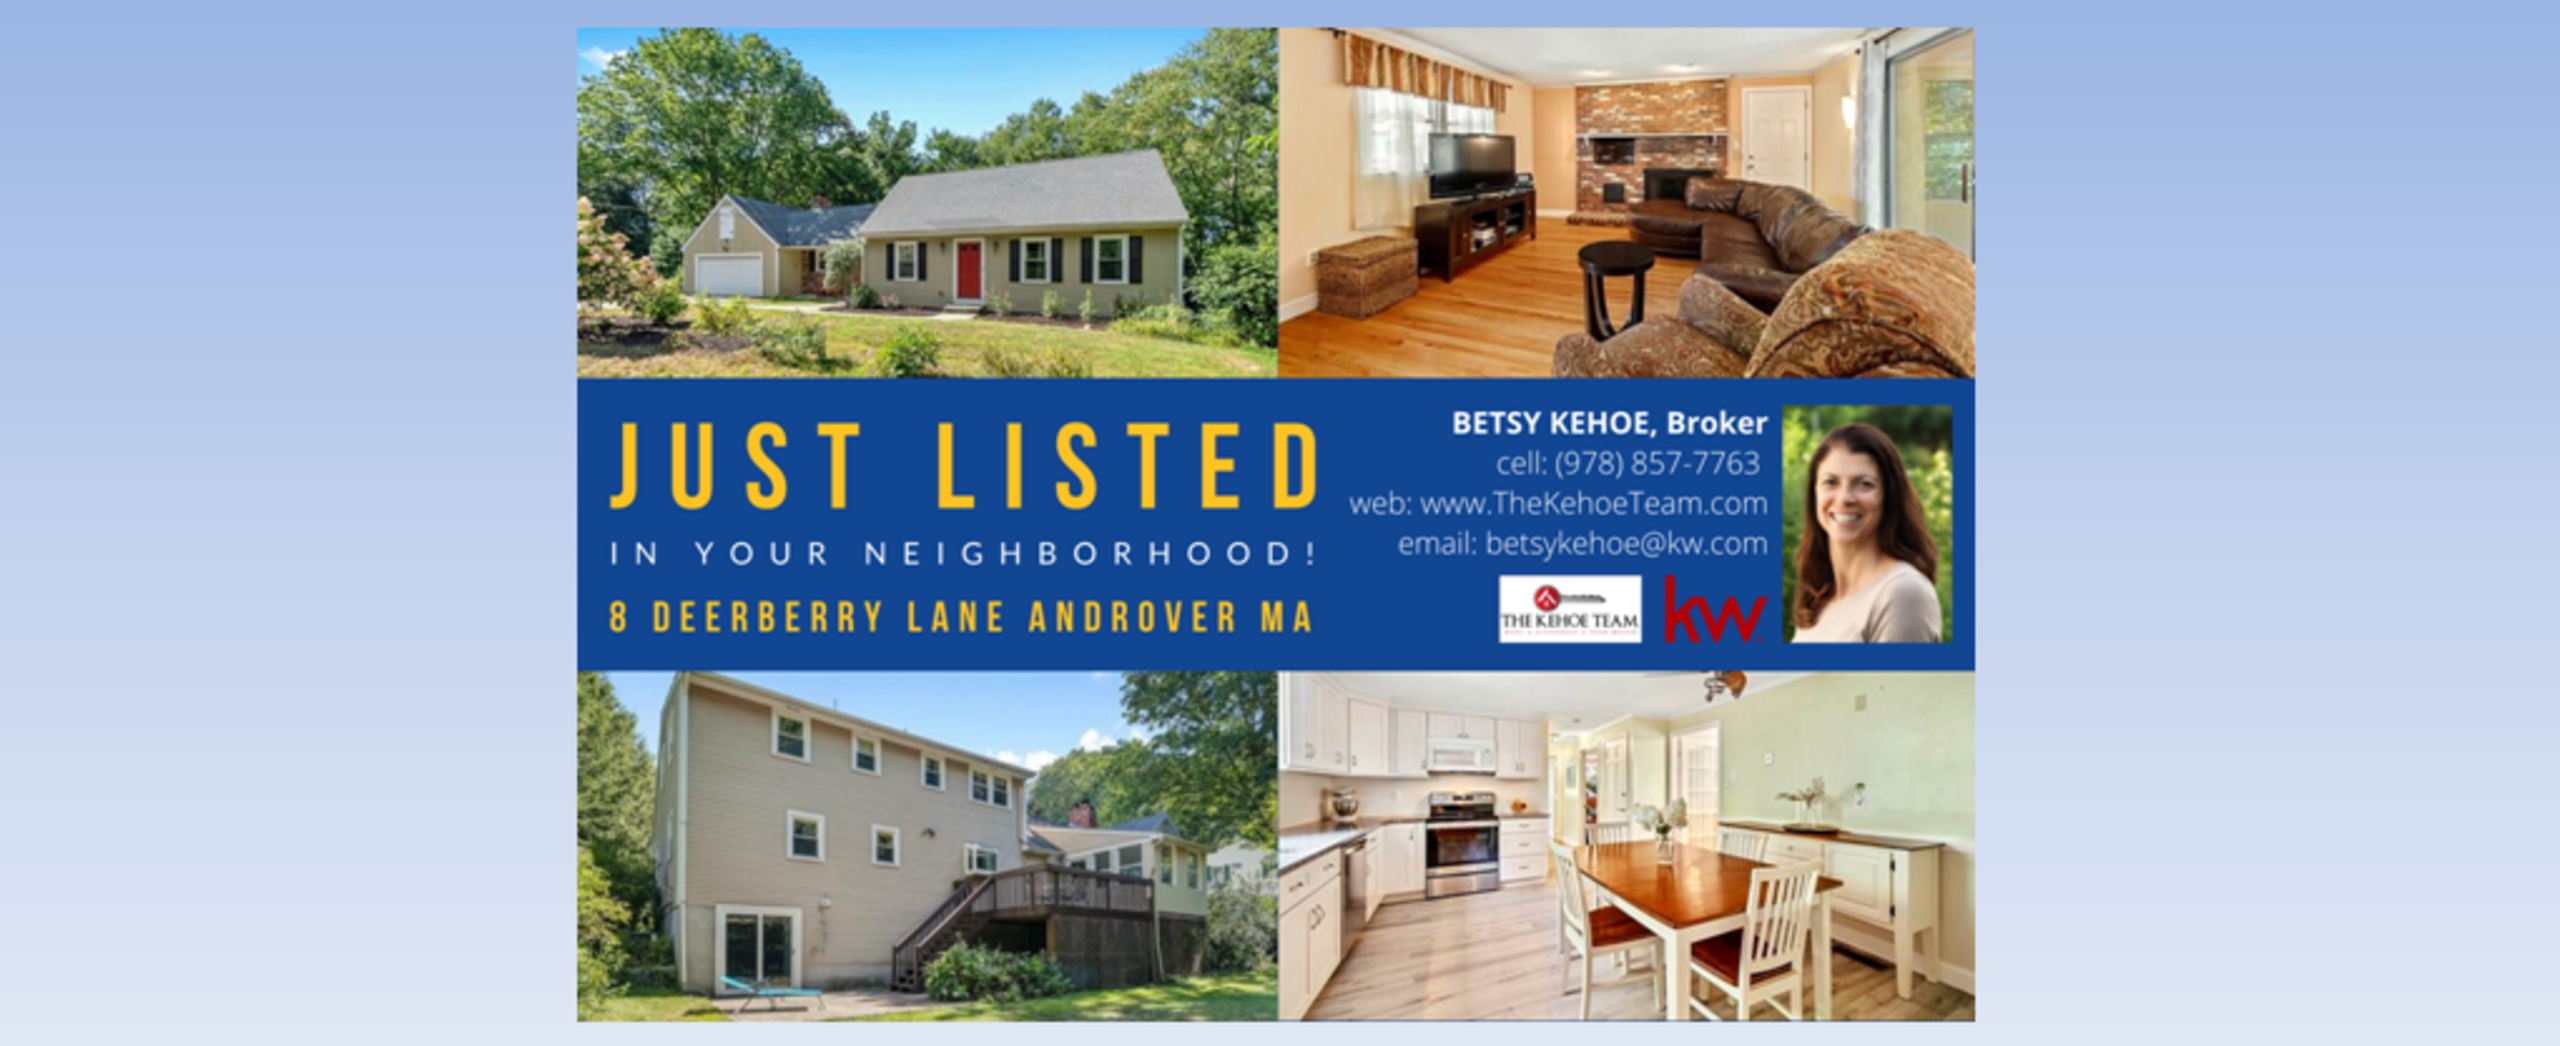 JUST LISTED - 8 DEERBERRY LANE ANDOVER MA 01810